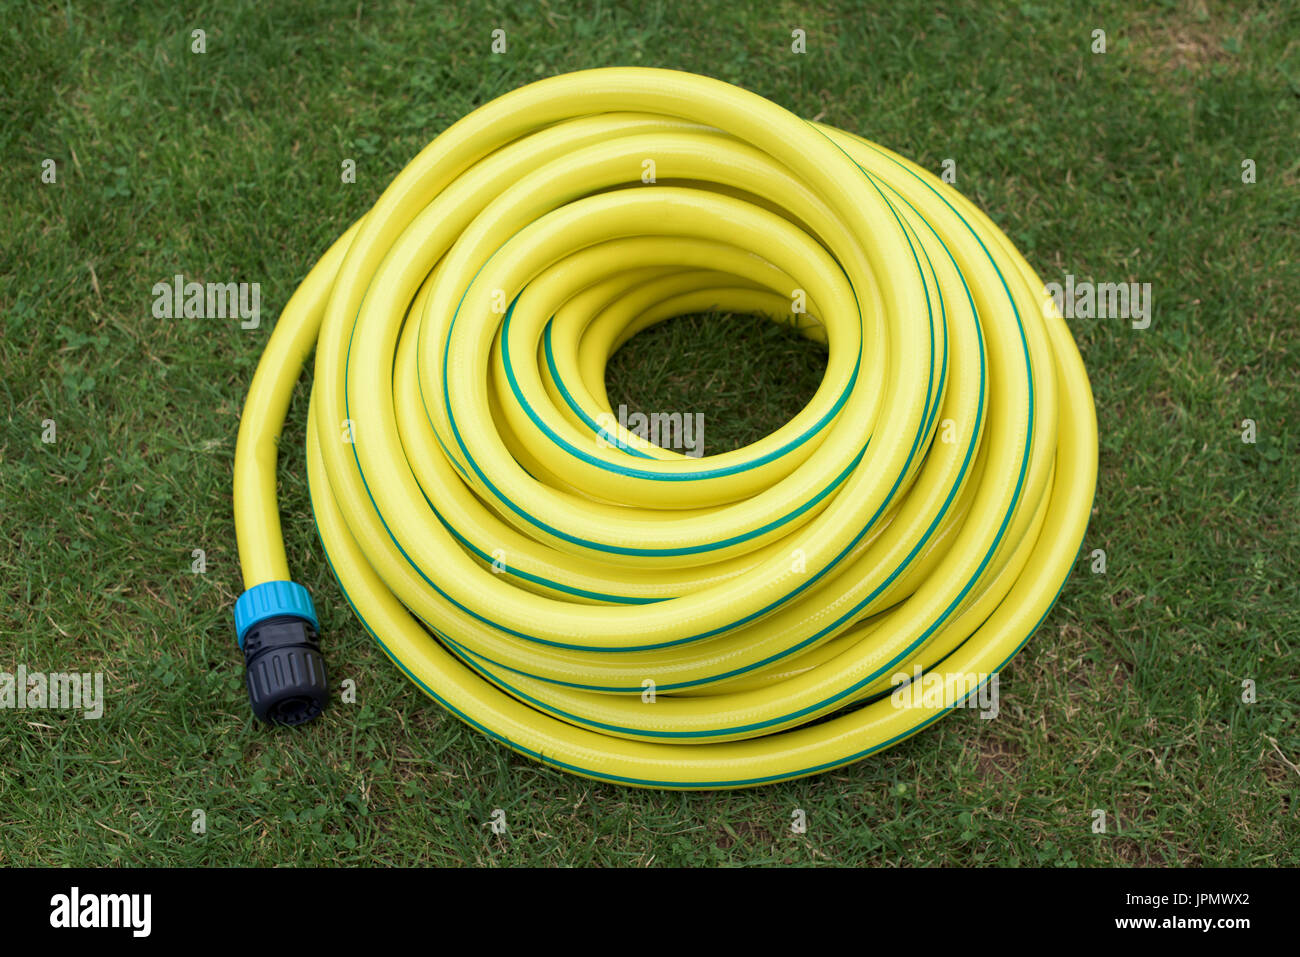 Yellow plastic water pipe on a green grass - Stock Image & Plastic Water Pipe Stock Photos u0026 Plastic Water Pipe Stock Images ...